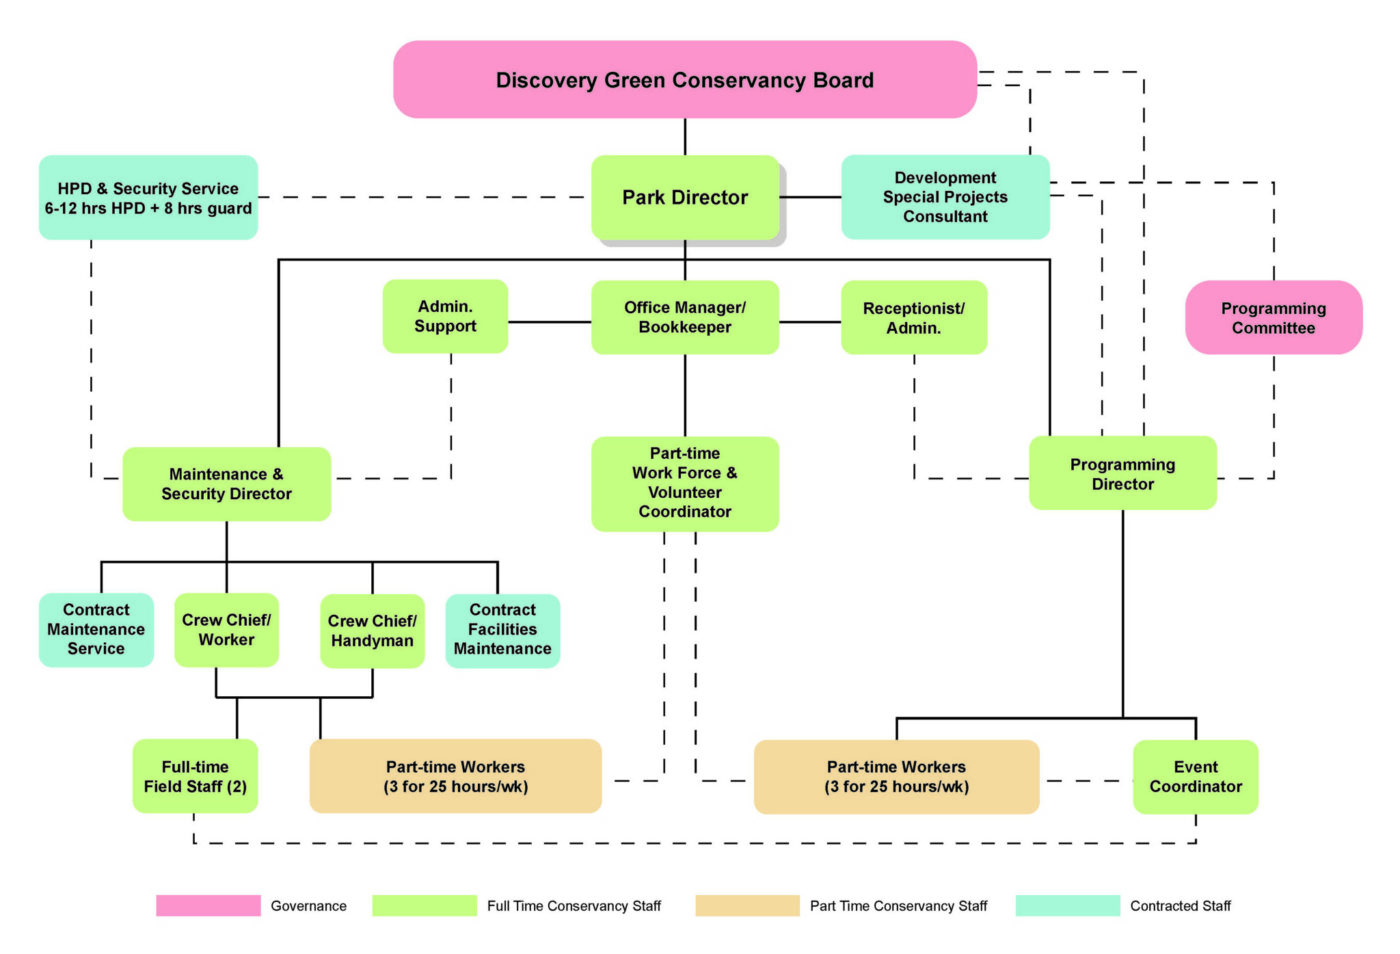 A diagram of potential organization for the Discovery Green Conservancy. The Park Director oversees a Maintenance and Security Director, Programming Director, Office Manager, and Administration Support. Each director had additional staff under them.